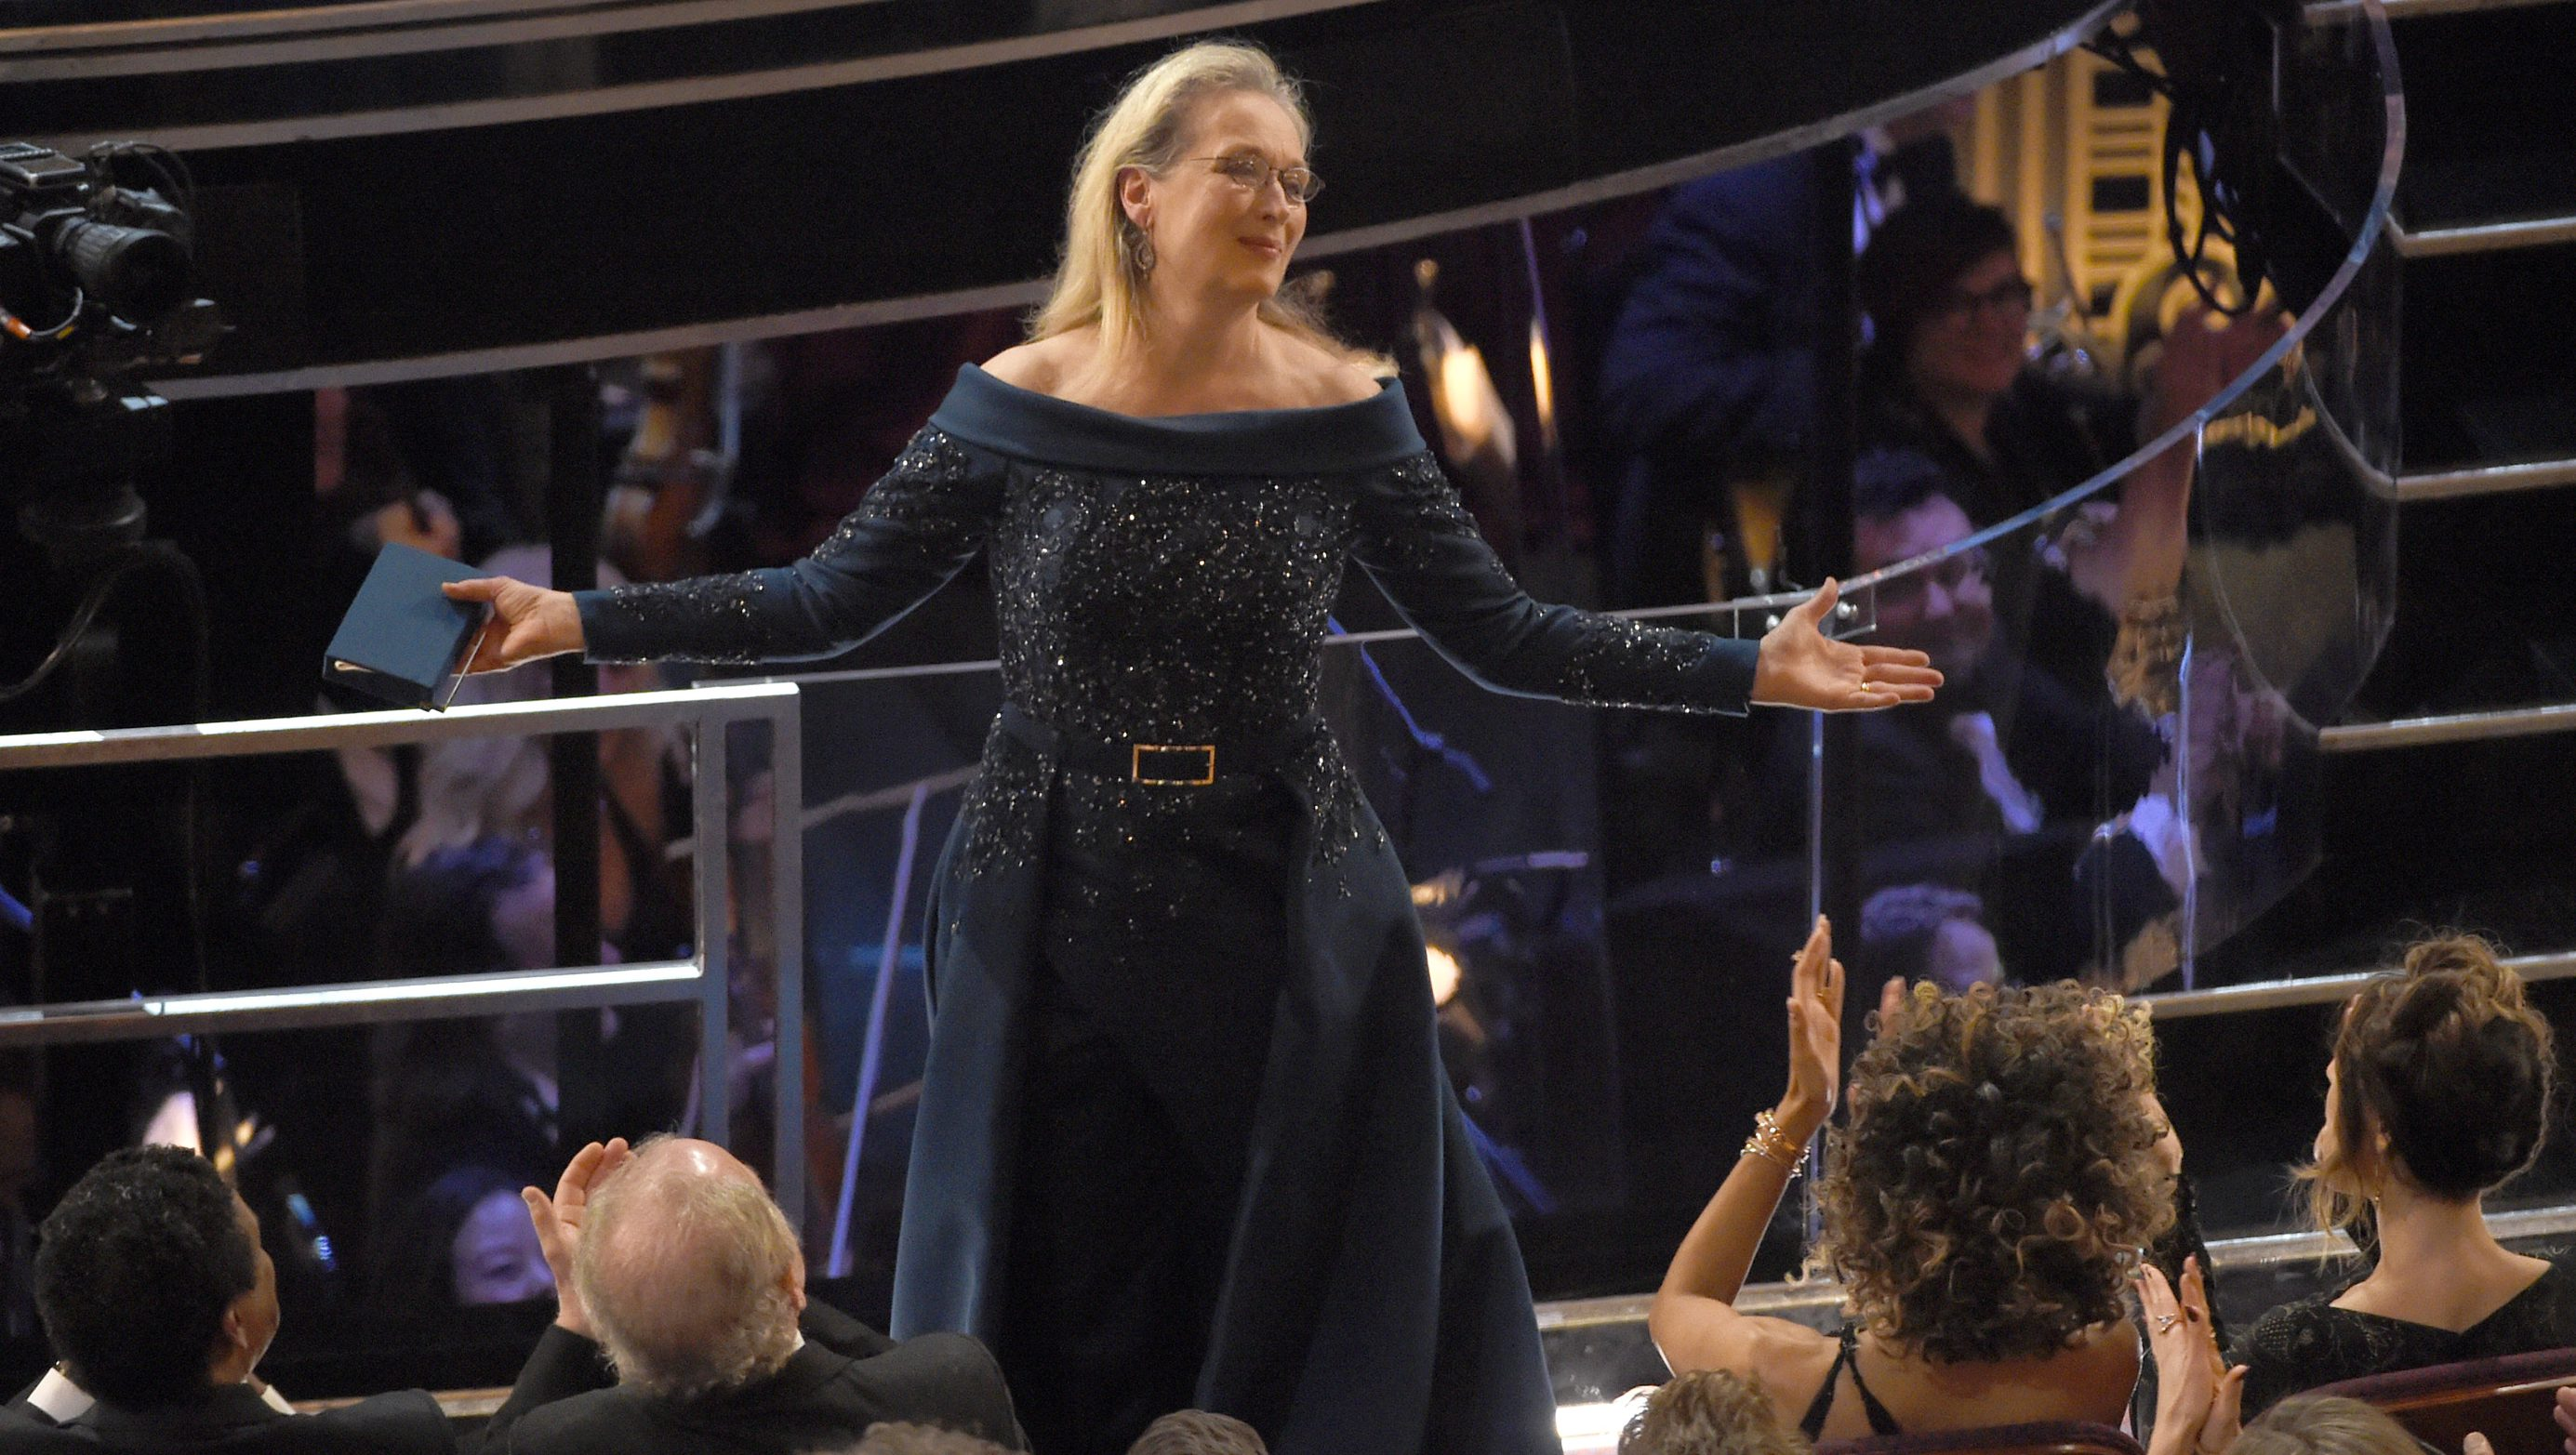 Meryl Streep stands for applause at the Oscars on Sunday, Feb. 26, 2017, at the Dolby Theatre in Los Angeles. (Photo by Chris Pizzello/Invision/AP)